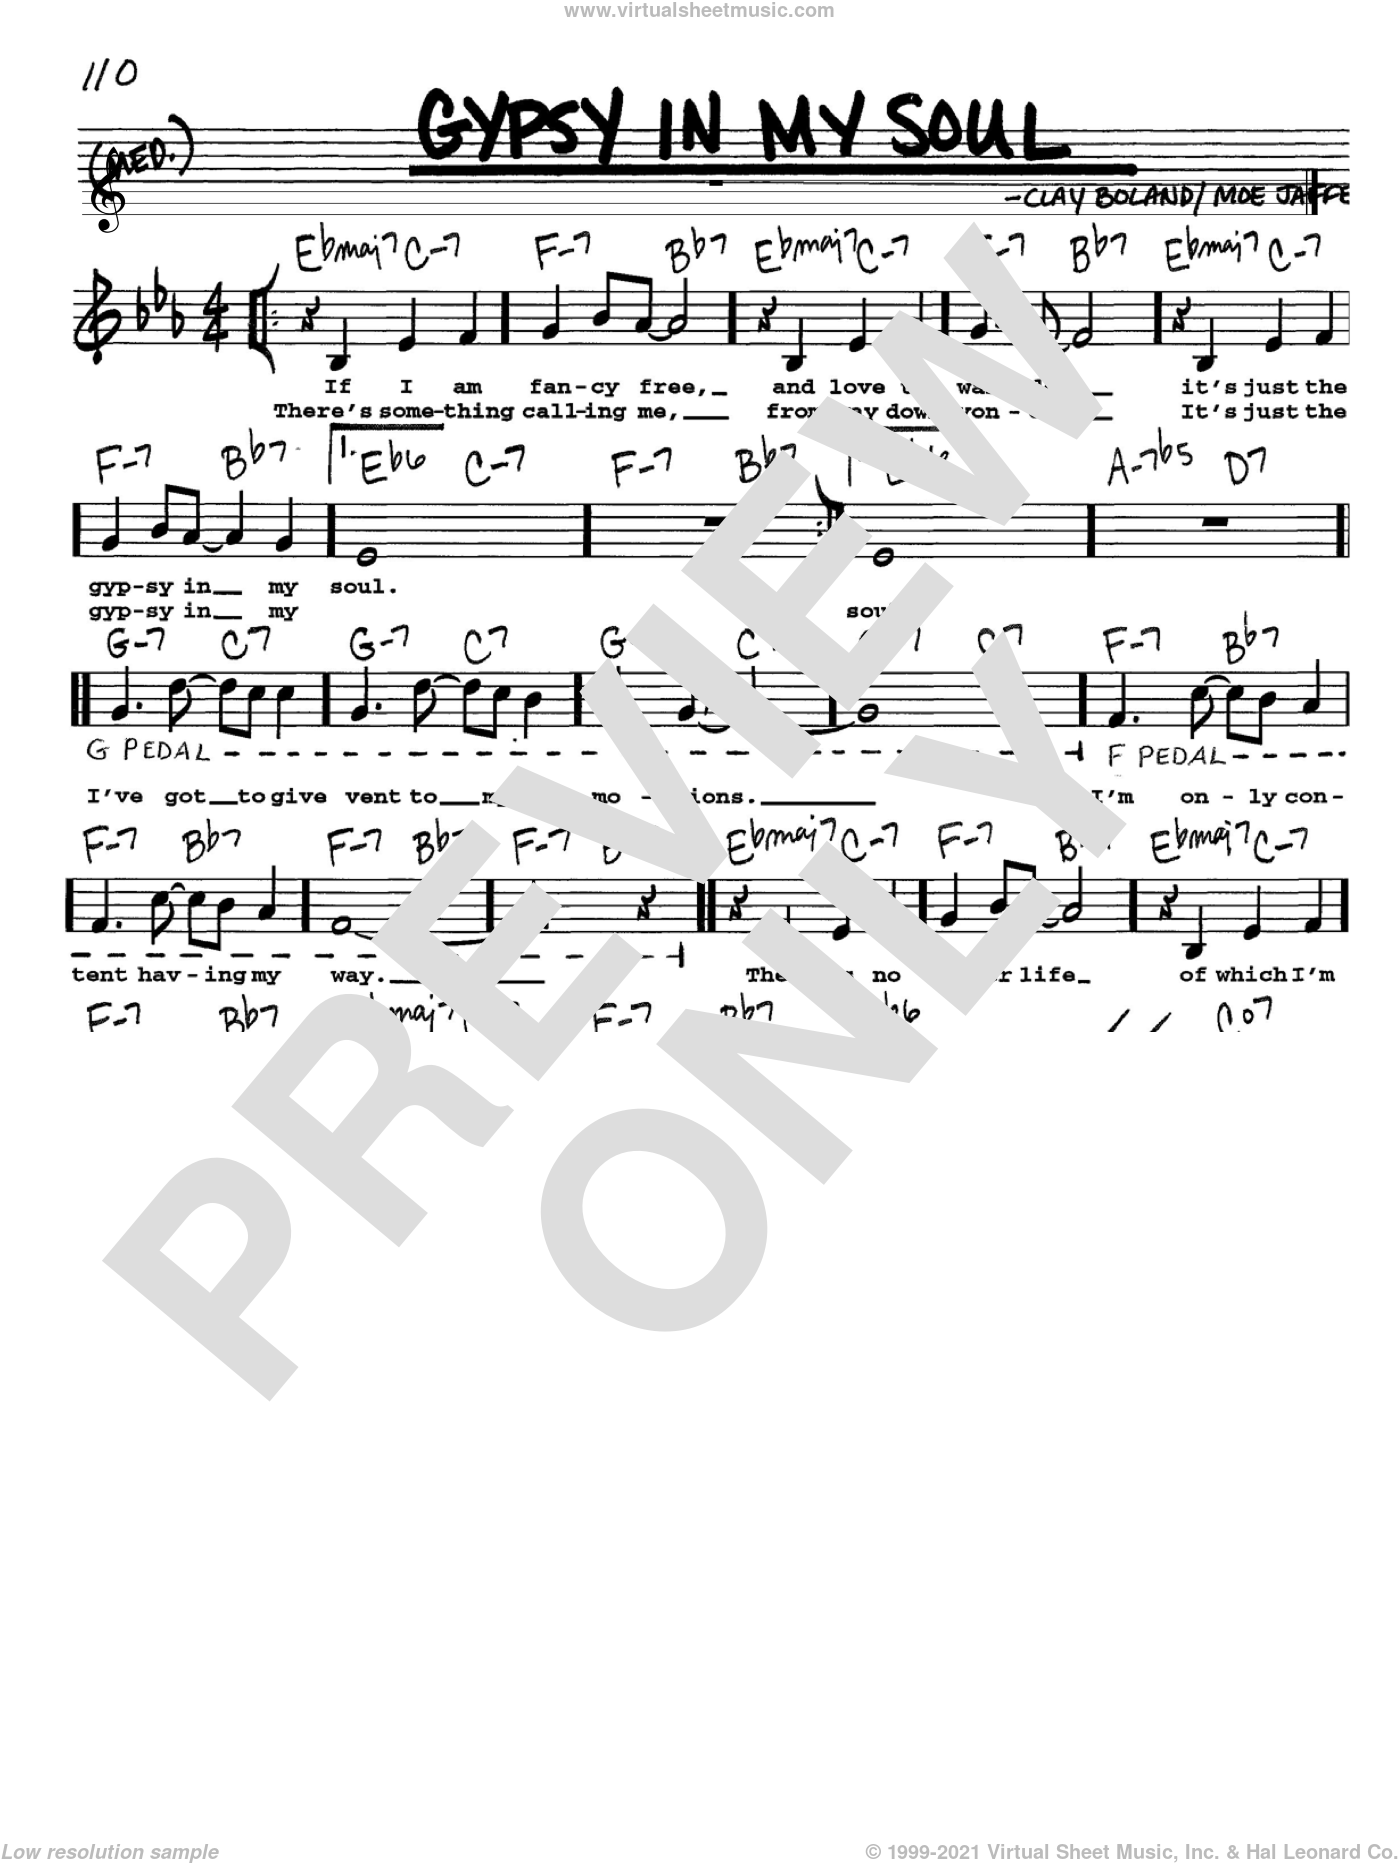 Gypsy In My Soul sheet music for voice and other instruments (Vocal Volume 1) by Clay Boland and Moe Jaffe. Score Image Preview.